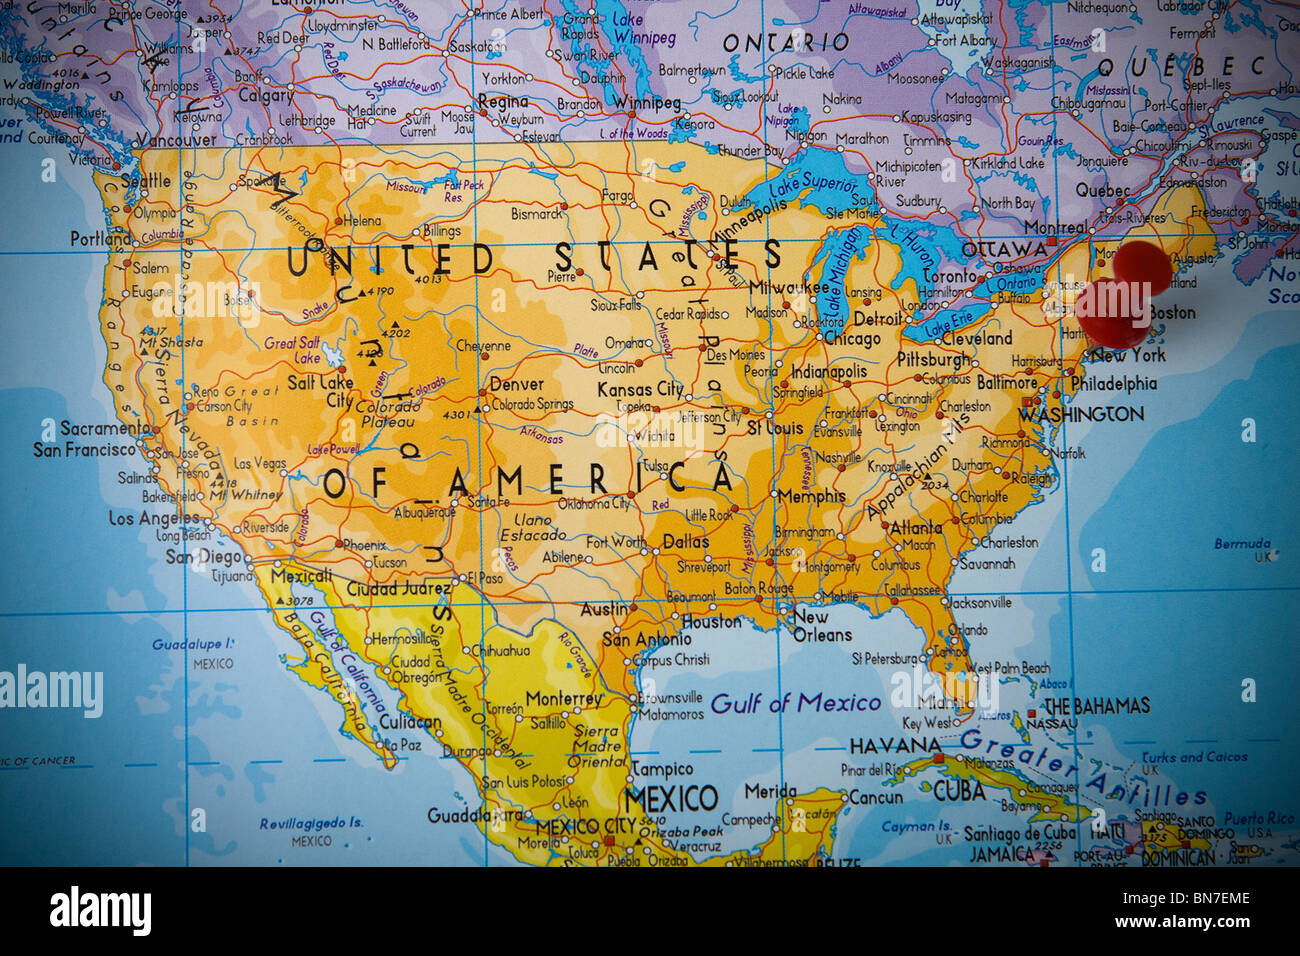 Cartina America New York.United States Of America Map High Resolution Stock Photography And Images Alamy